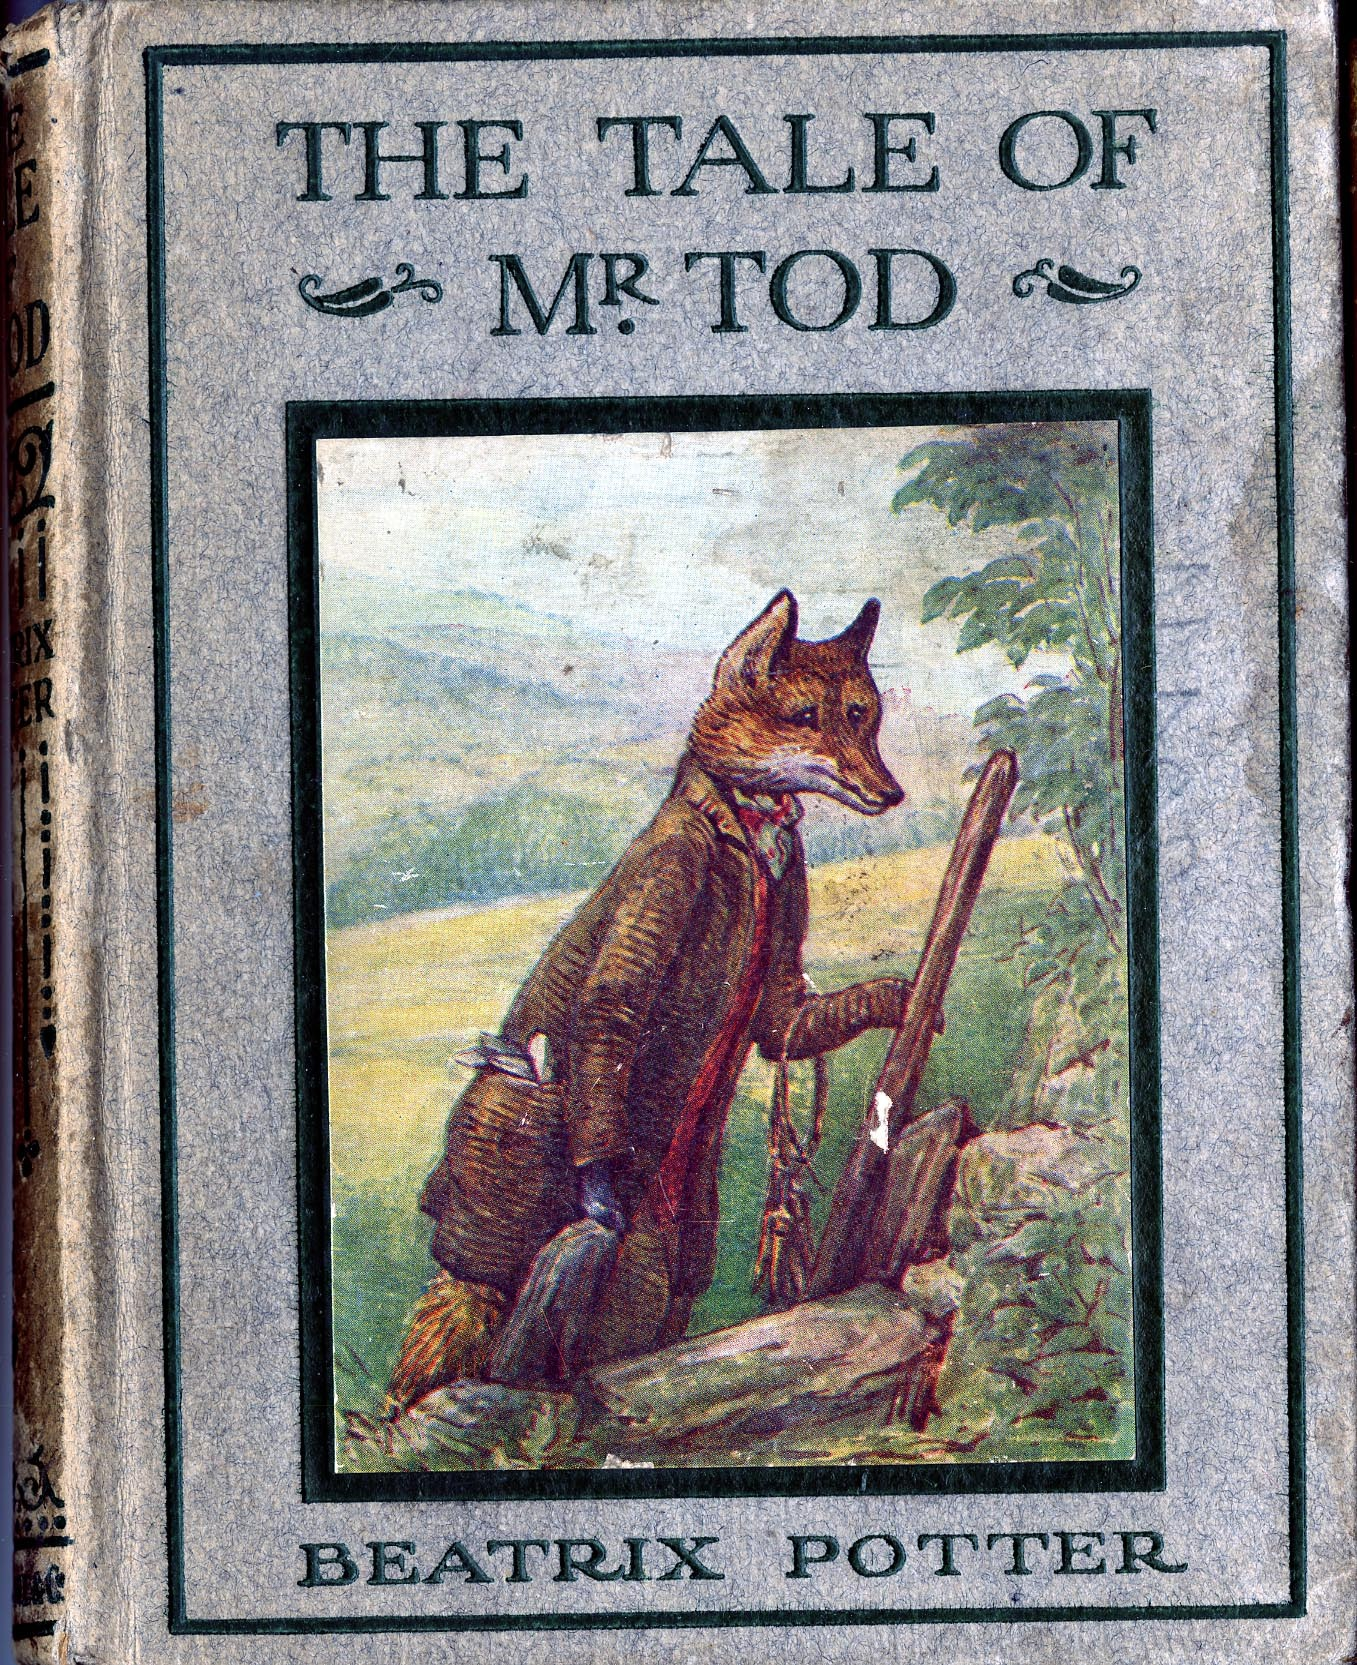 The Tale of Mr. Tod,